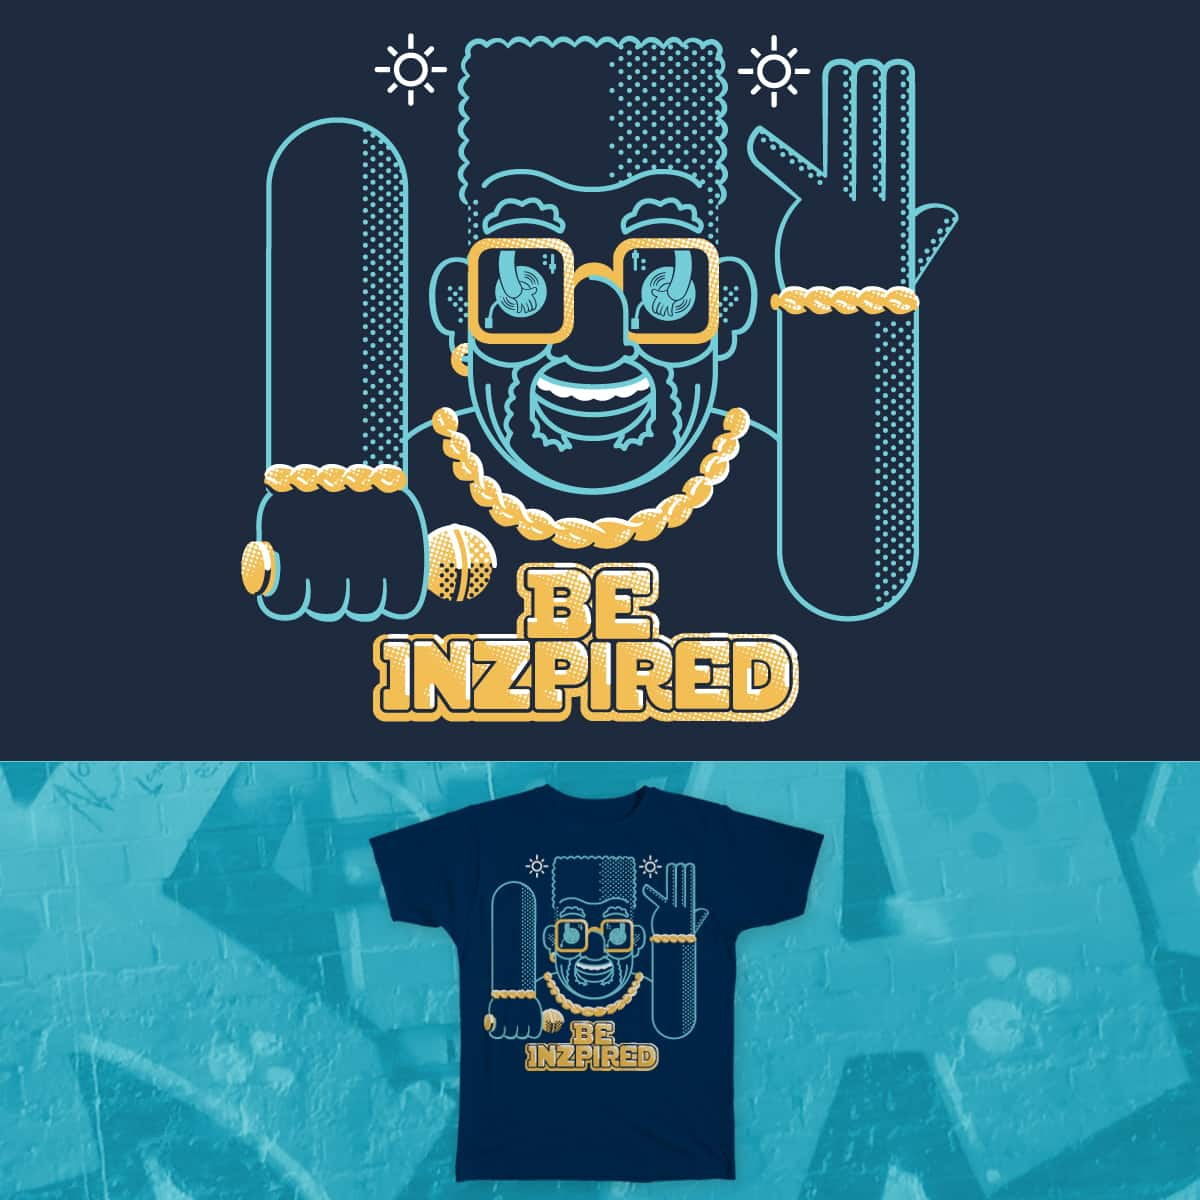 Be Inspired by builtfromlegos on Threadless